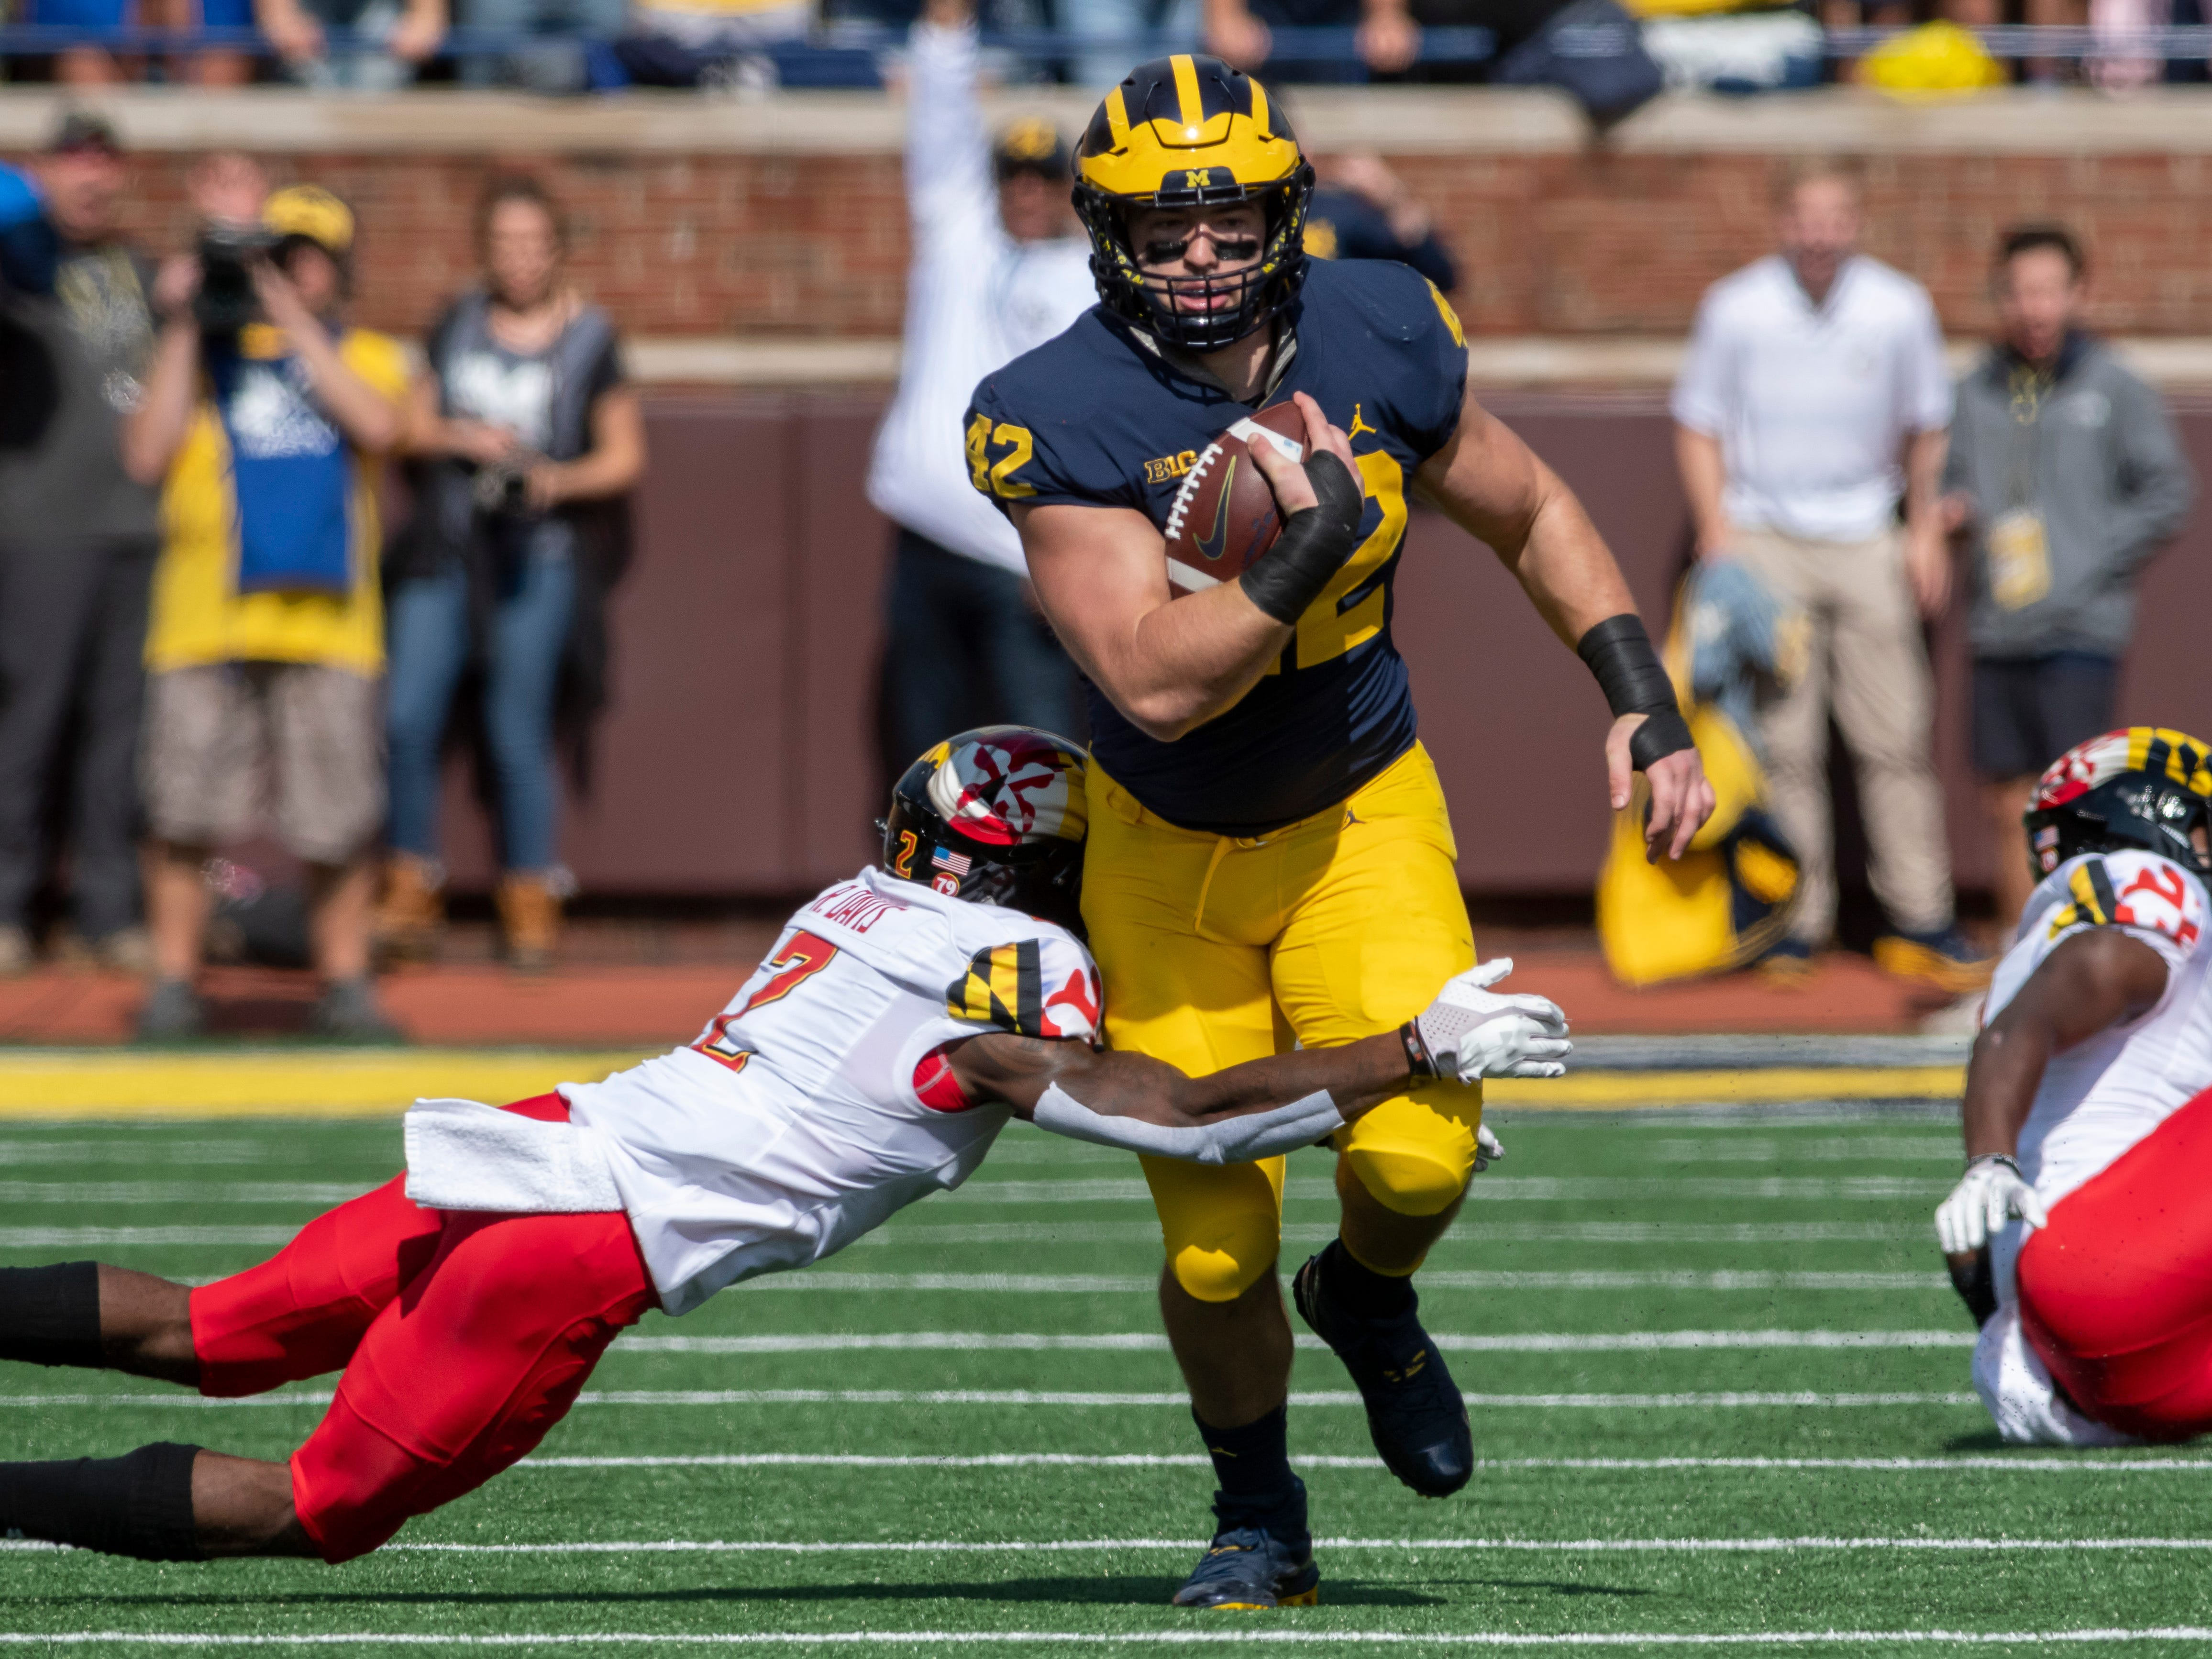 FULLBACK: Ben Mason – Mason showed some versatility last season and also had a big first half against Nebraska scoring three touchdowns. He had 80 yards on 33 carries for seven touchdowns last fall.